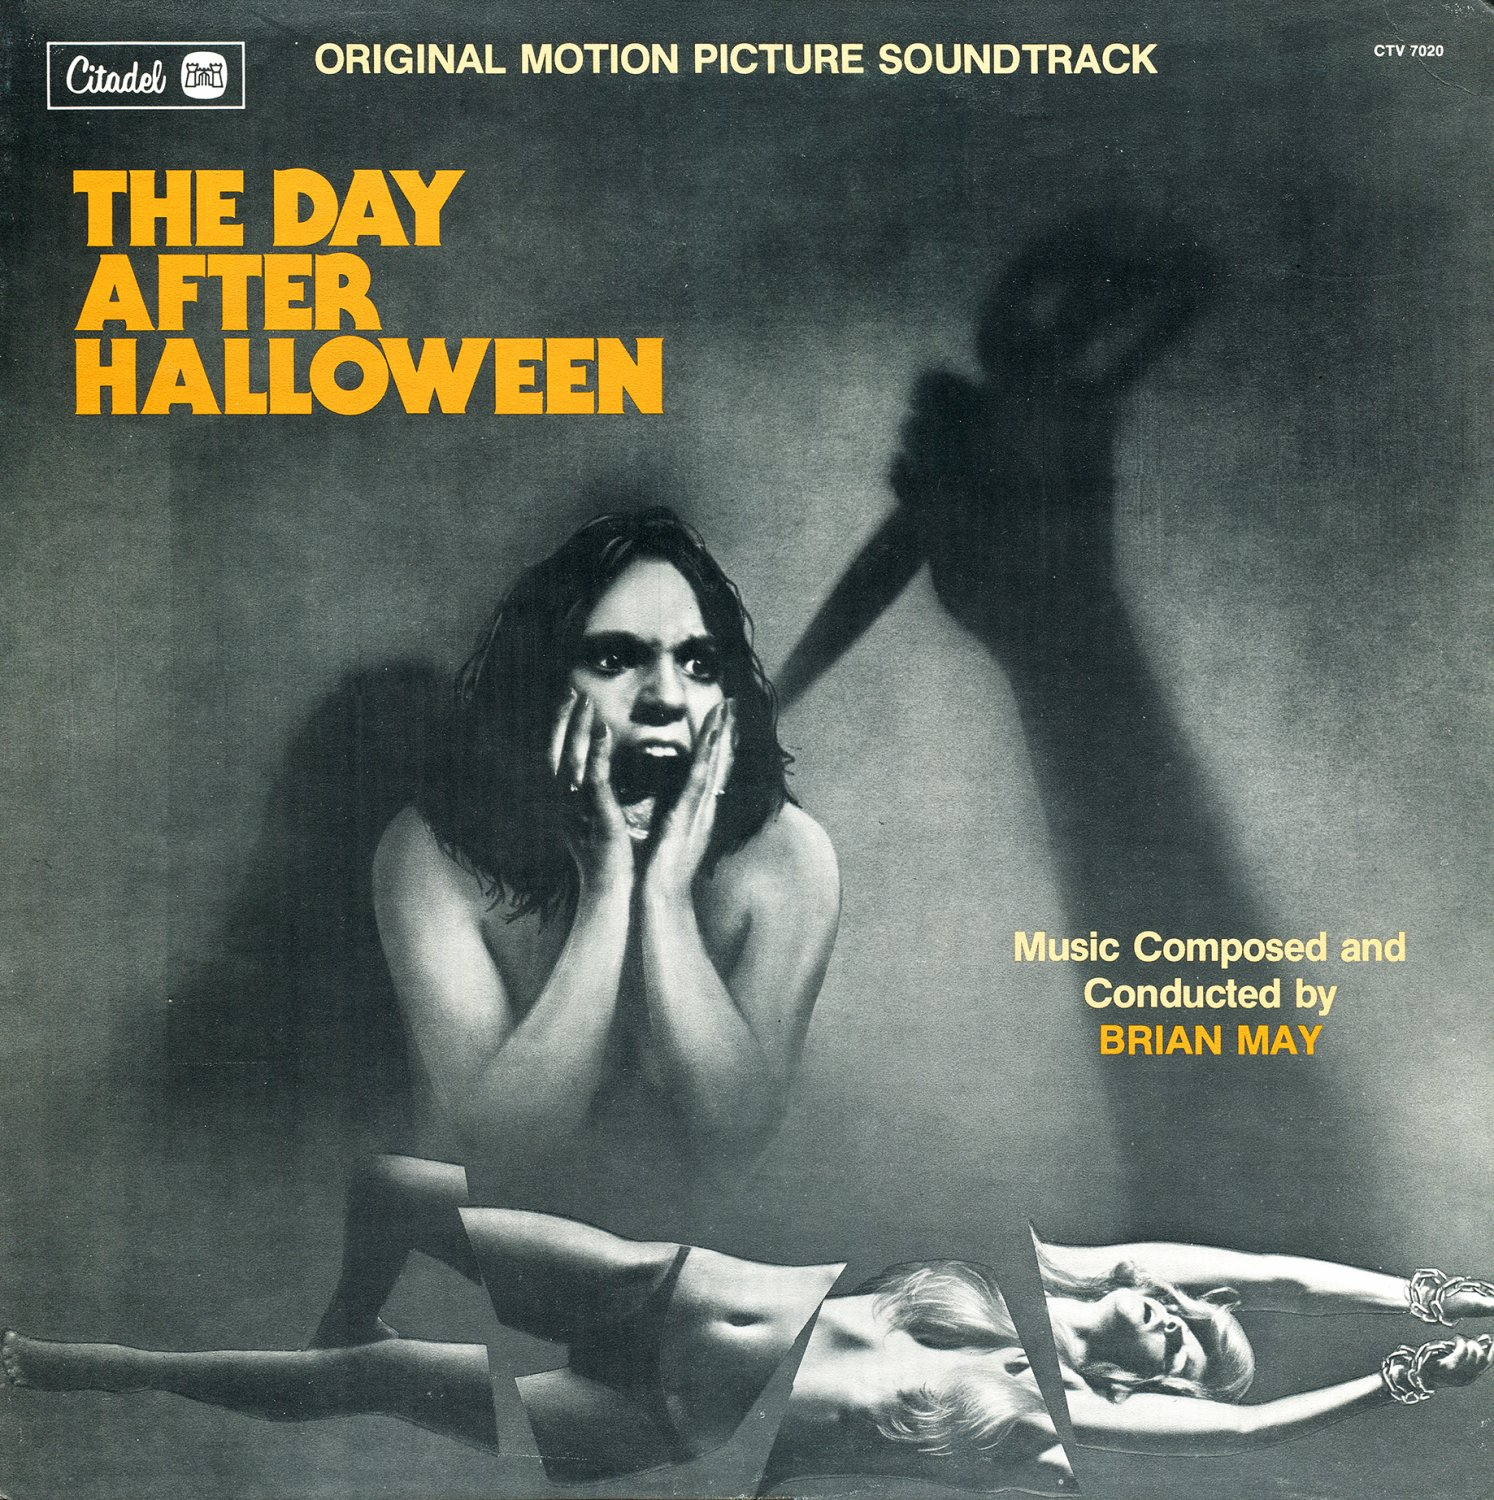 The Day After Halloween - Original Soundtrack, Brian May OST LP/CD